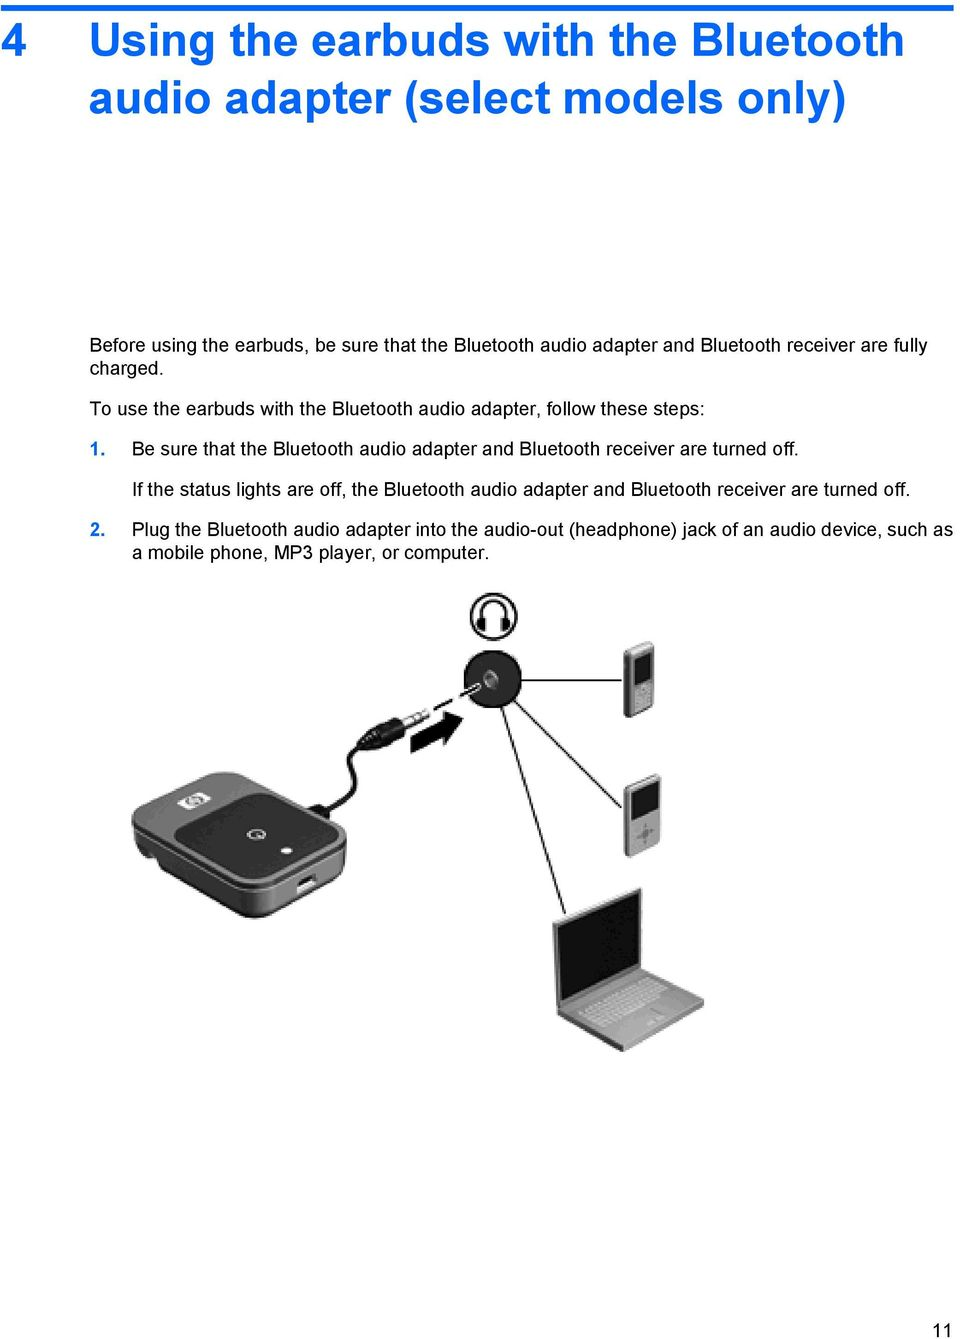 Be sure that the Bluetooth audio adapter and Bluetooth receiver are turned off.